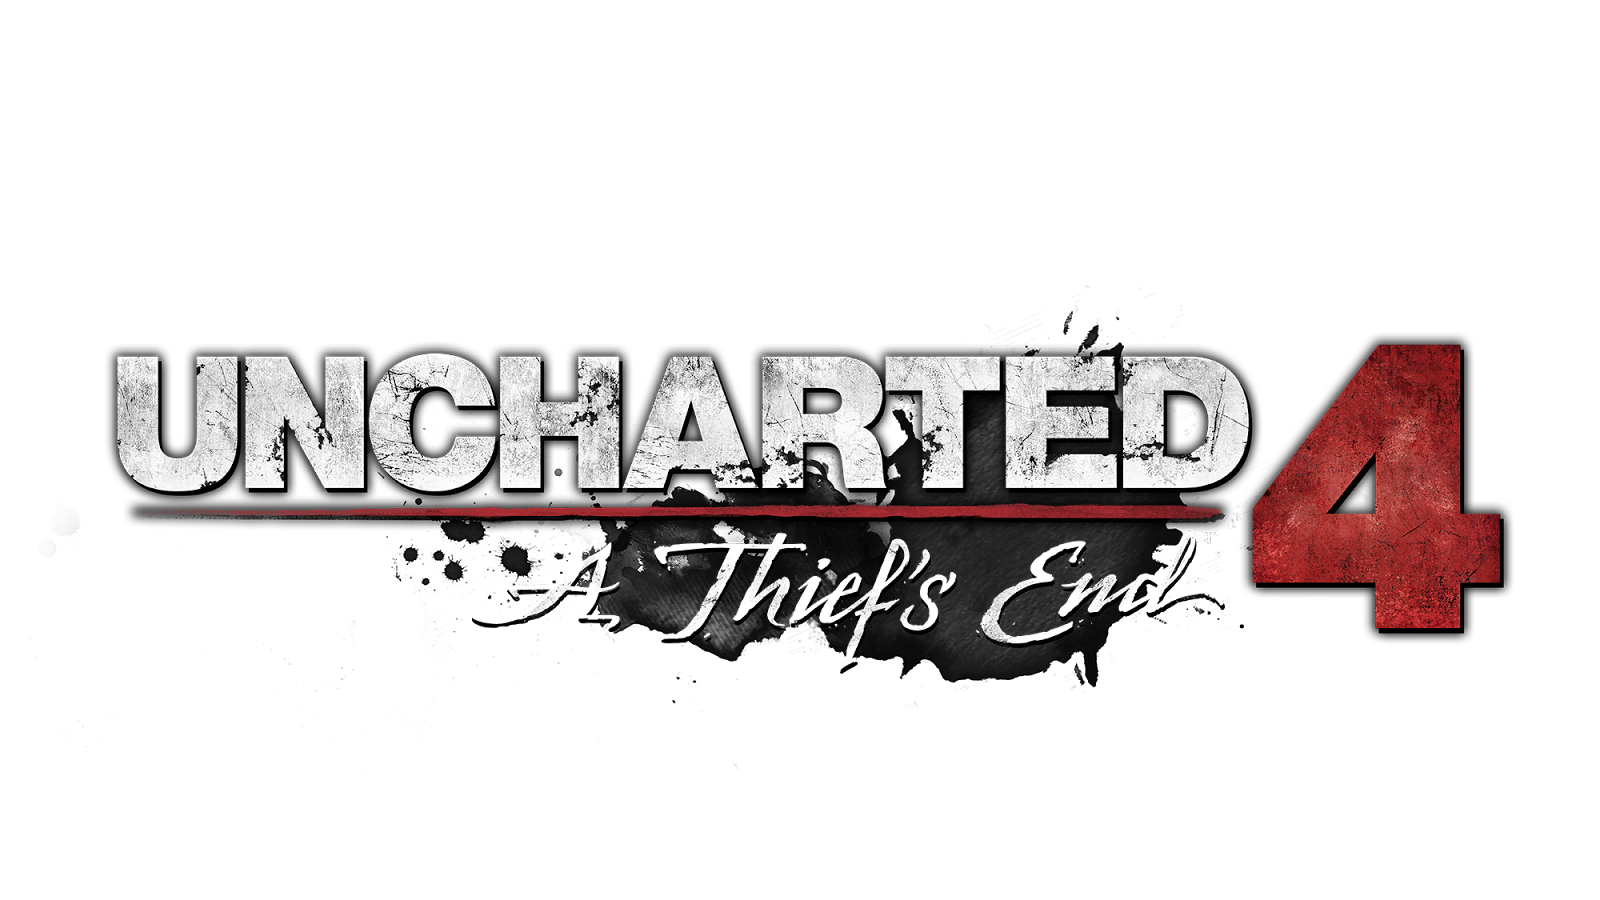 Uncharted 2 logo png